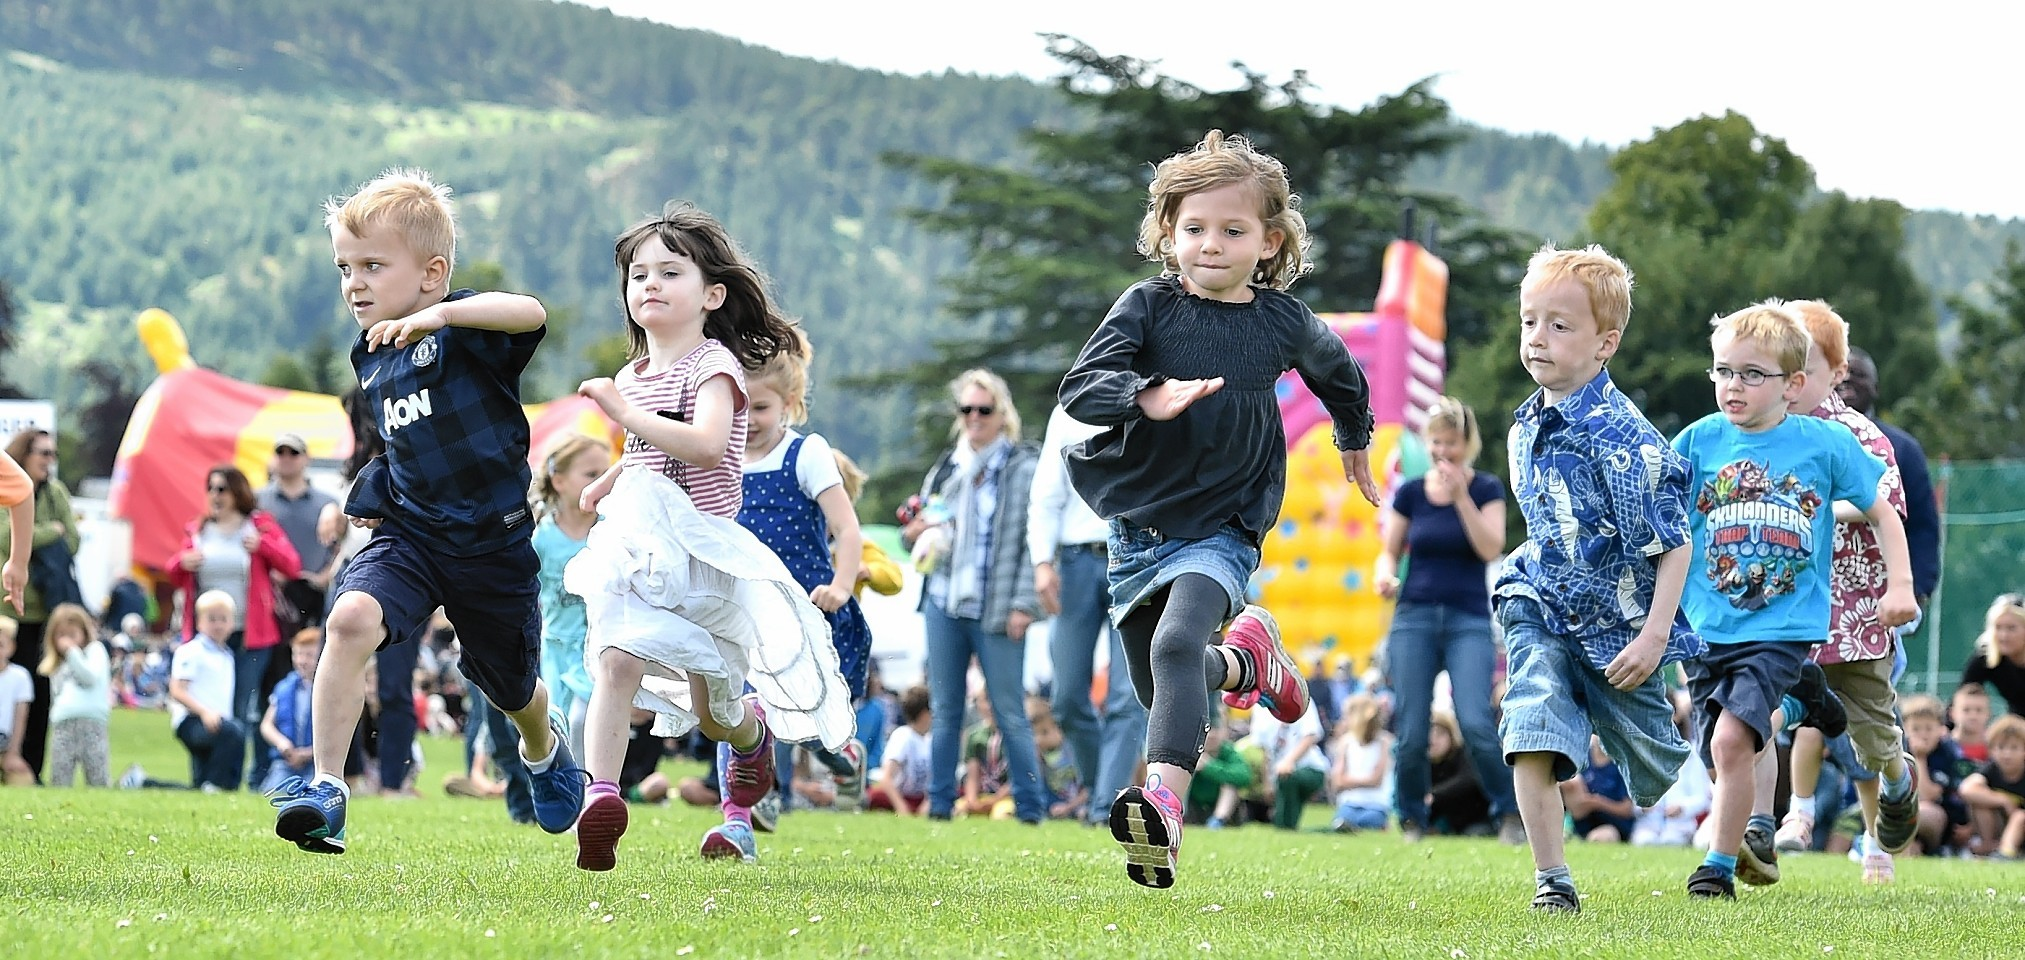 Aboyne Highland Games - The children's race. Picture by COLIN RENNIE